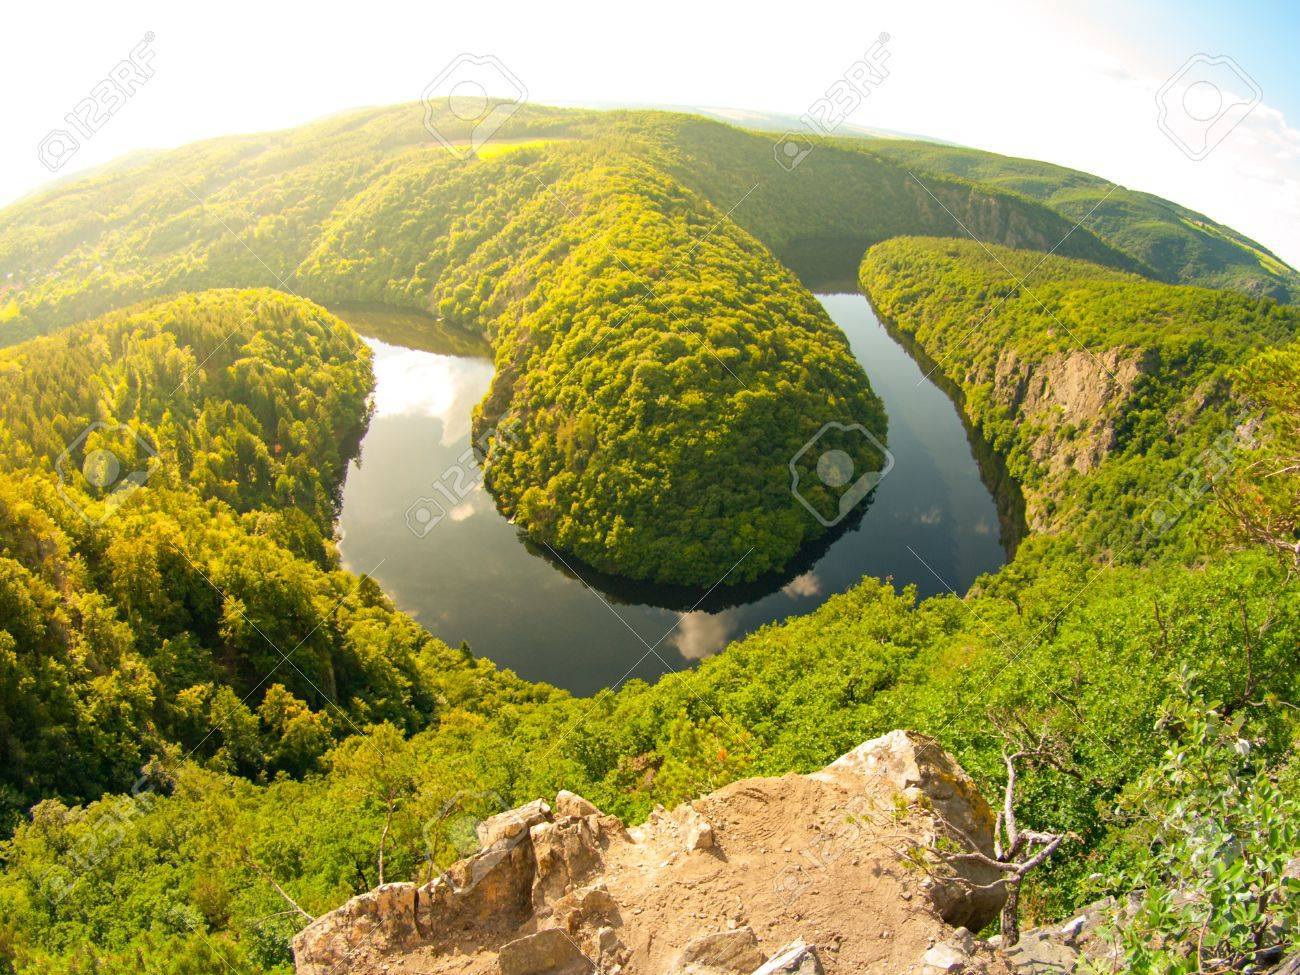 stock photo vltava river horseshoe meander with green forest view from maj vantage point near prague in central bohemia czech republic